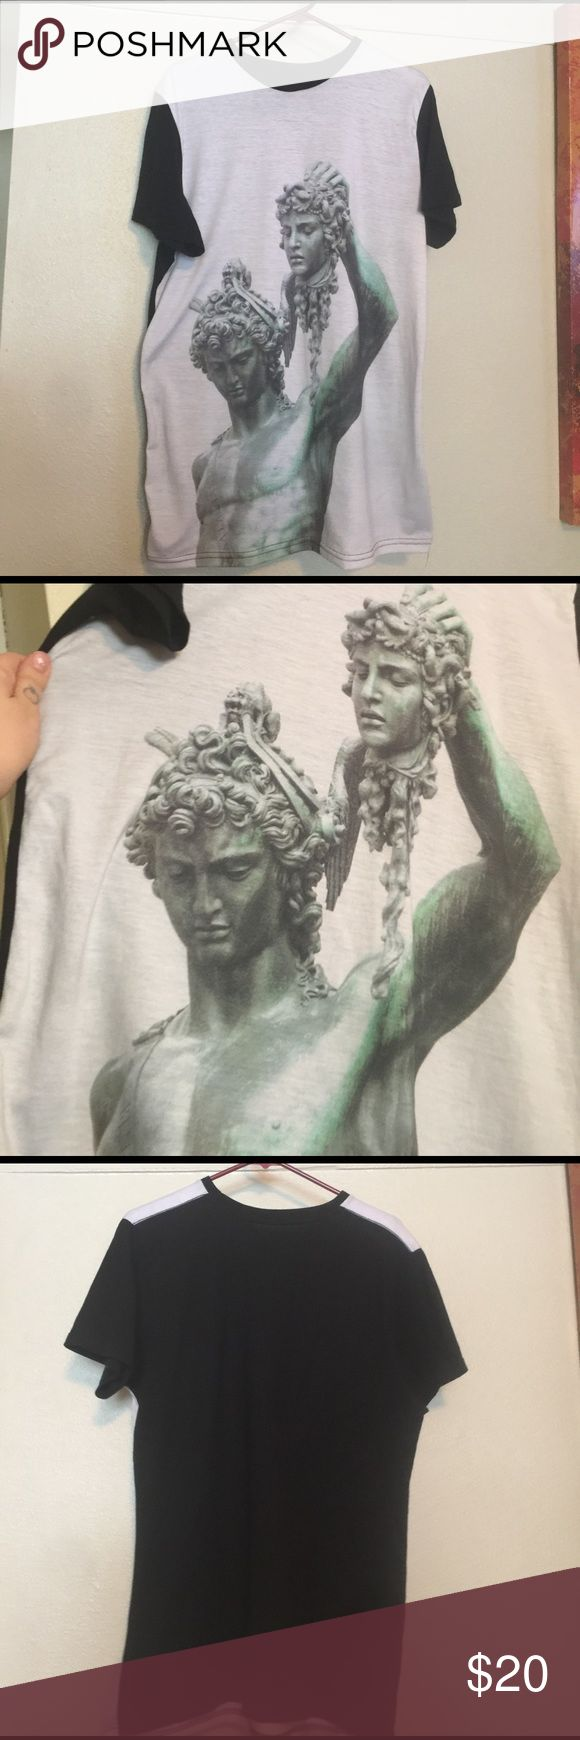 L.A.T.H.C. Shirt Perseus/Medusa statue print. Black and white. Los Angeles Tree House Club from Urban Outfitters Urban Outfitters Shirts Tees - Short Sleeve